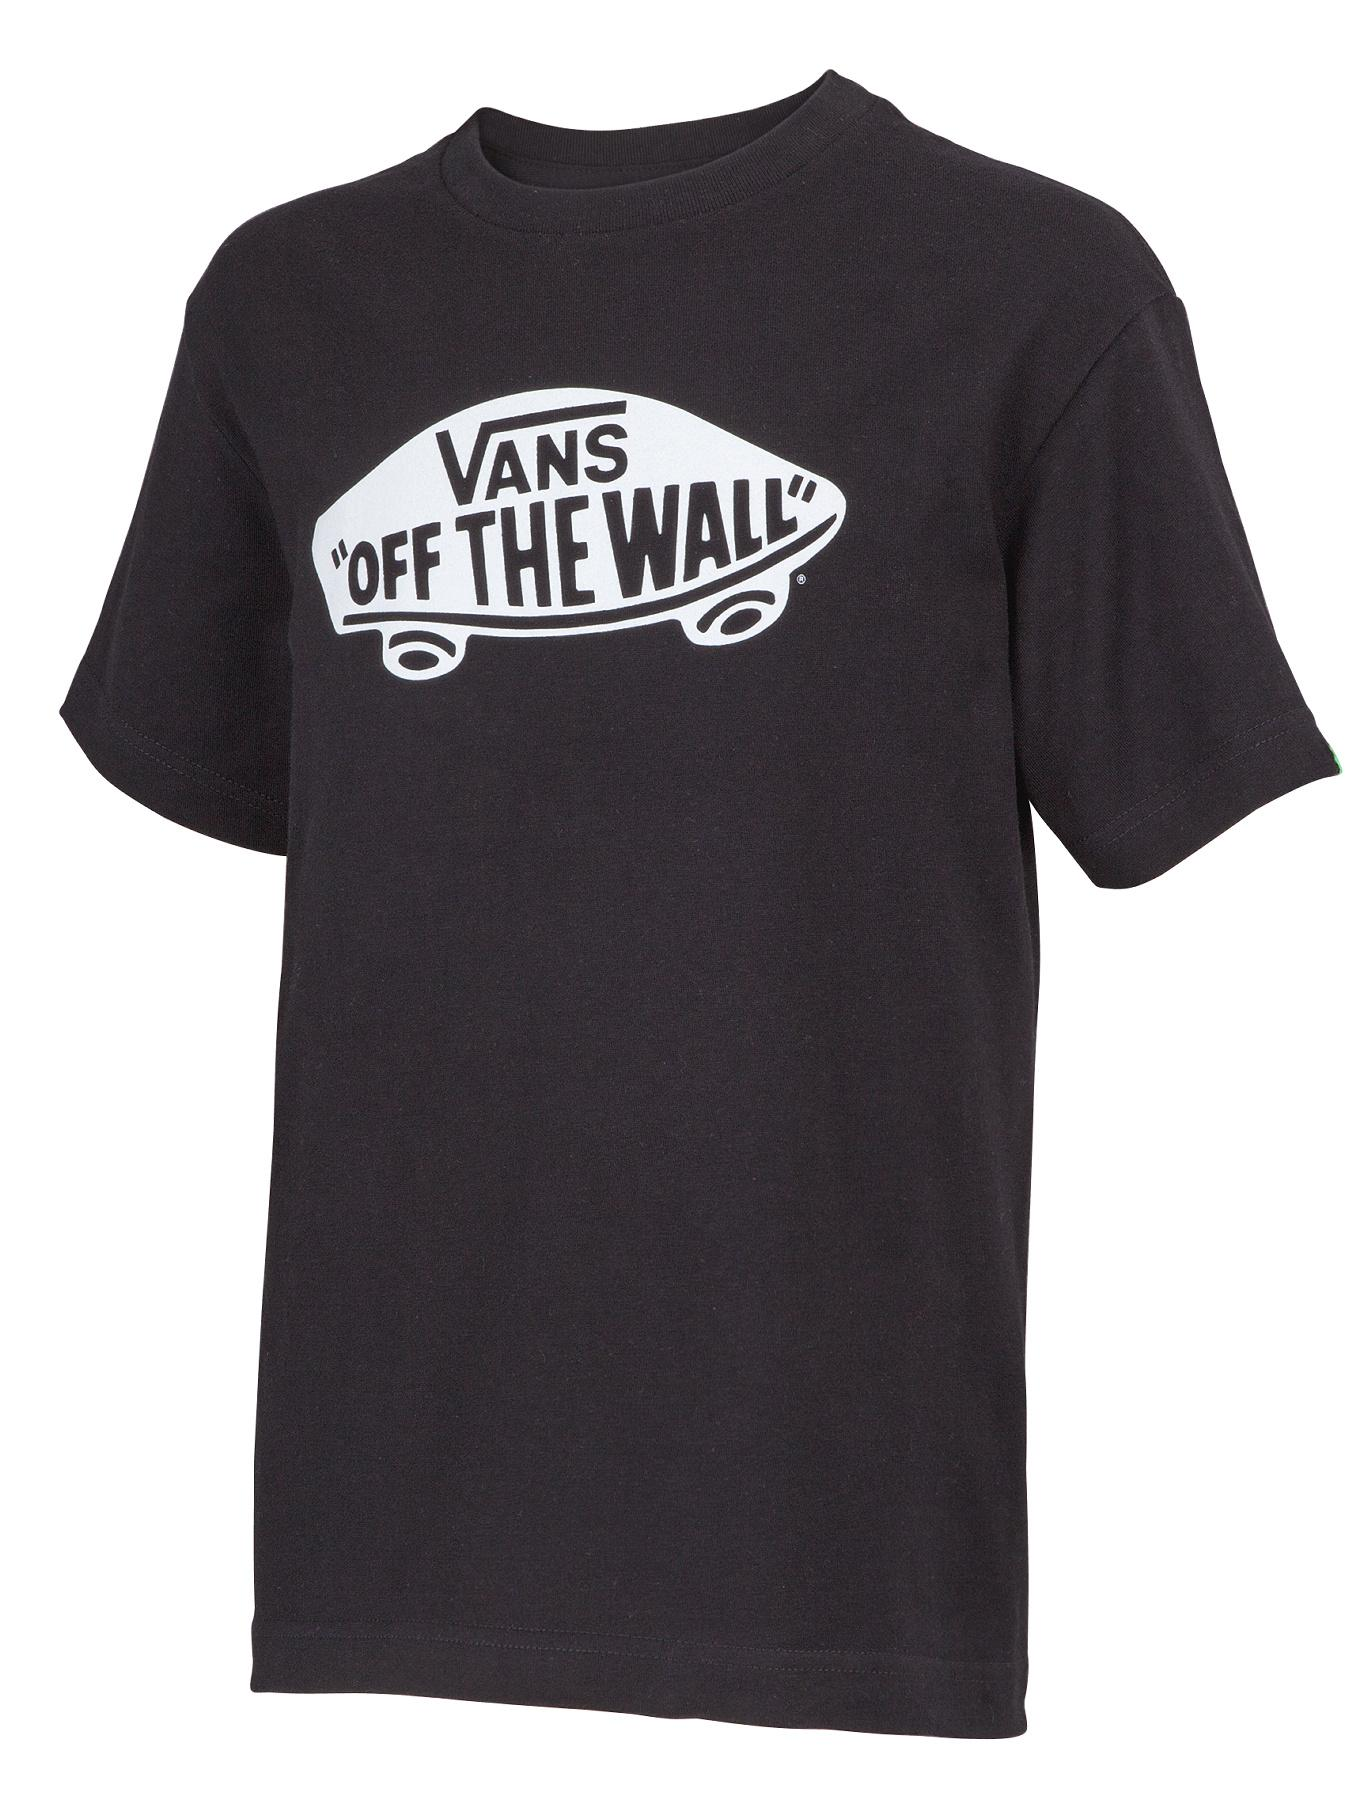 Vans Youth Boys Off The Wall T-shirt - Black, Black